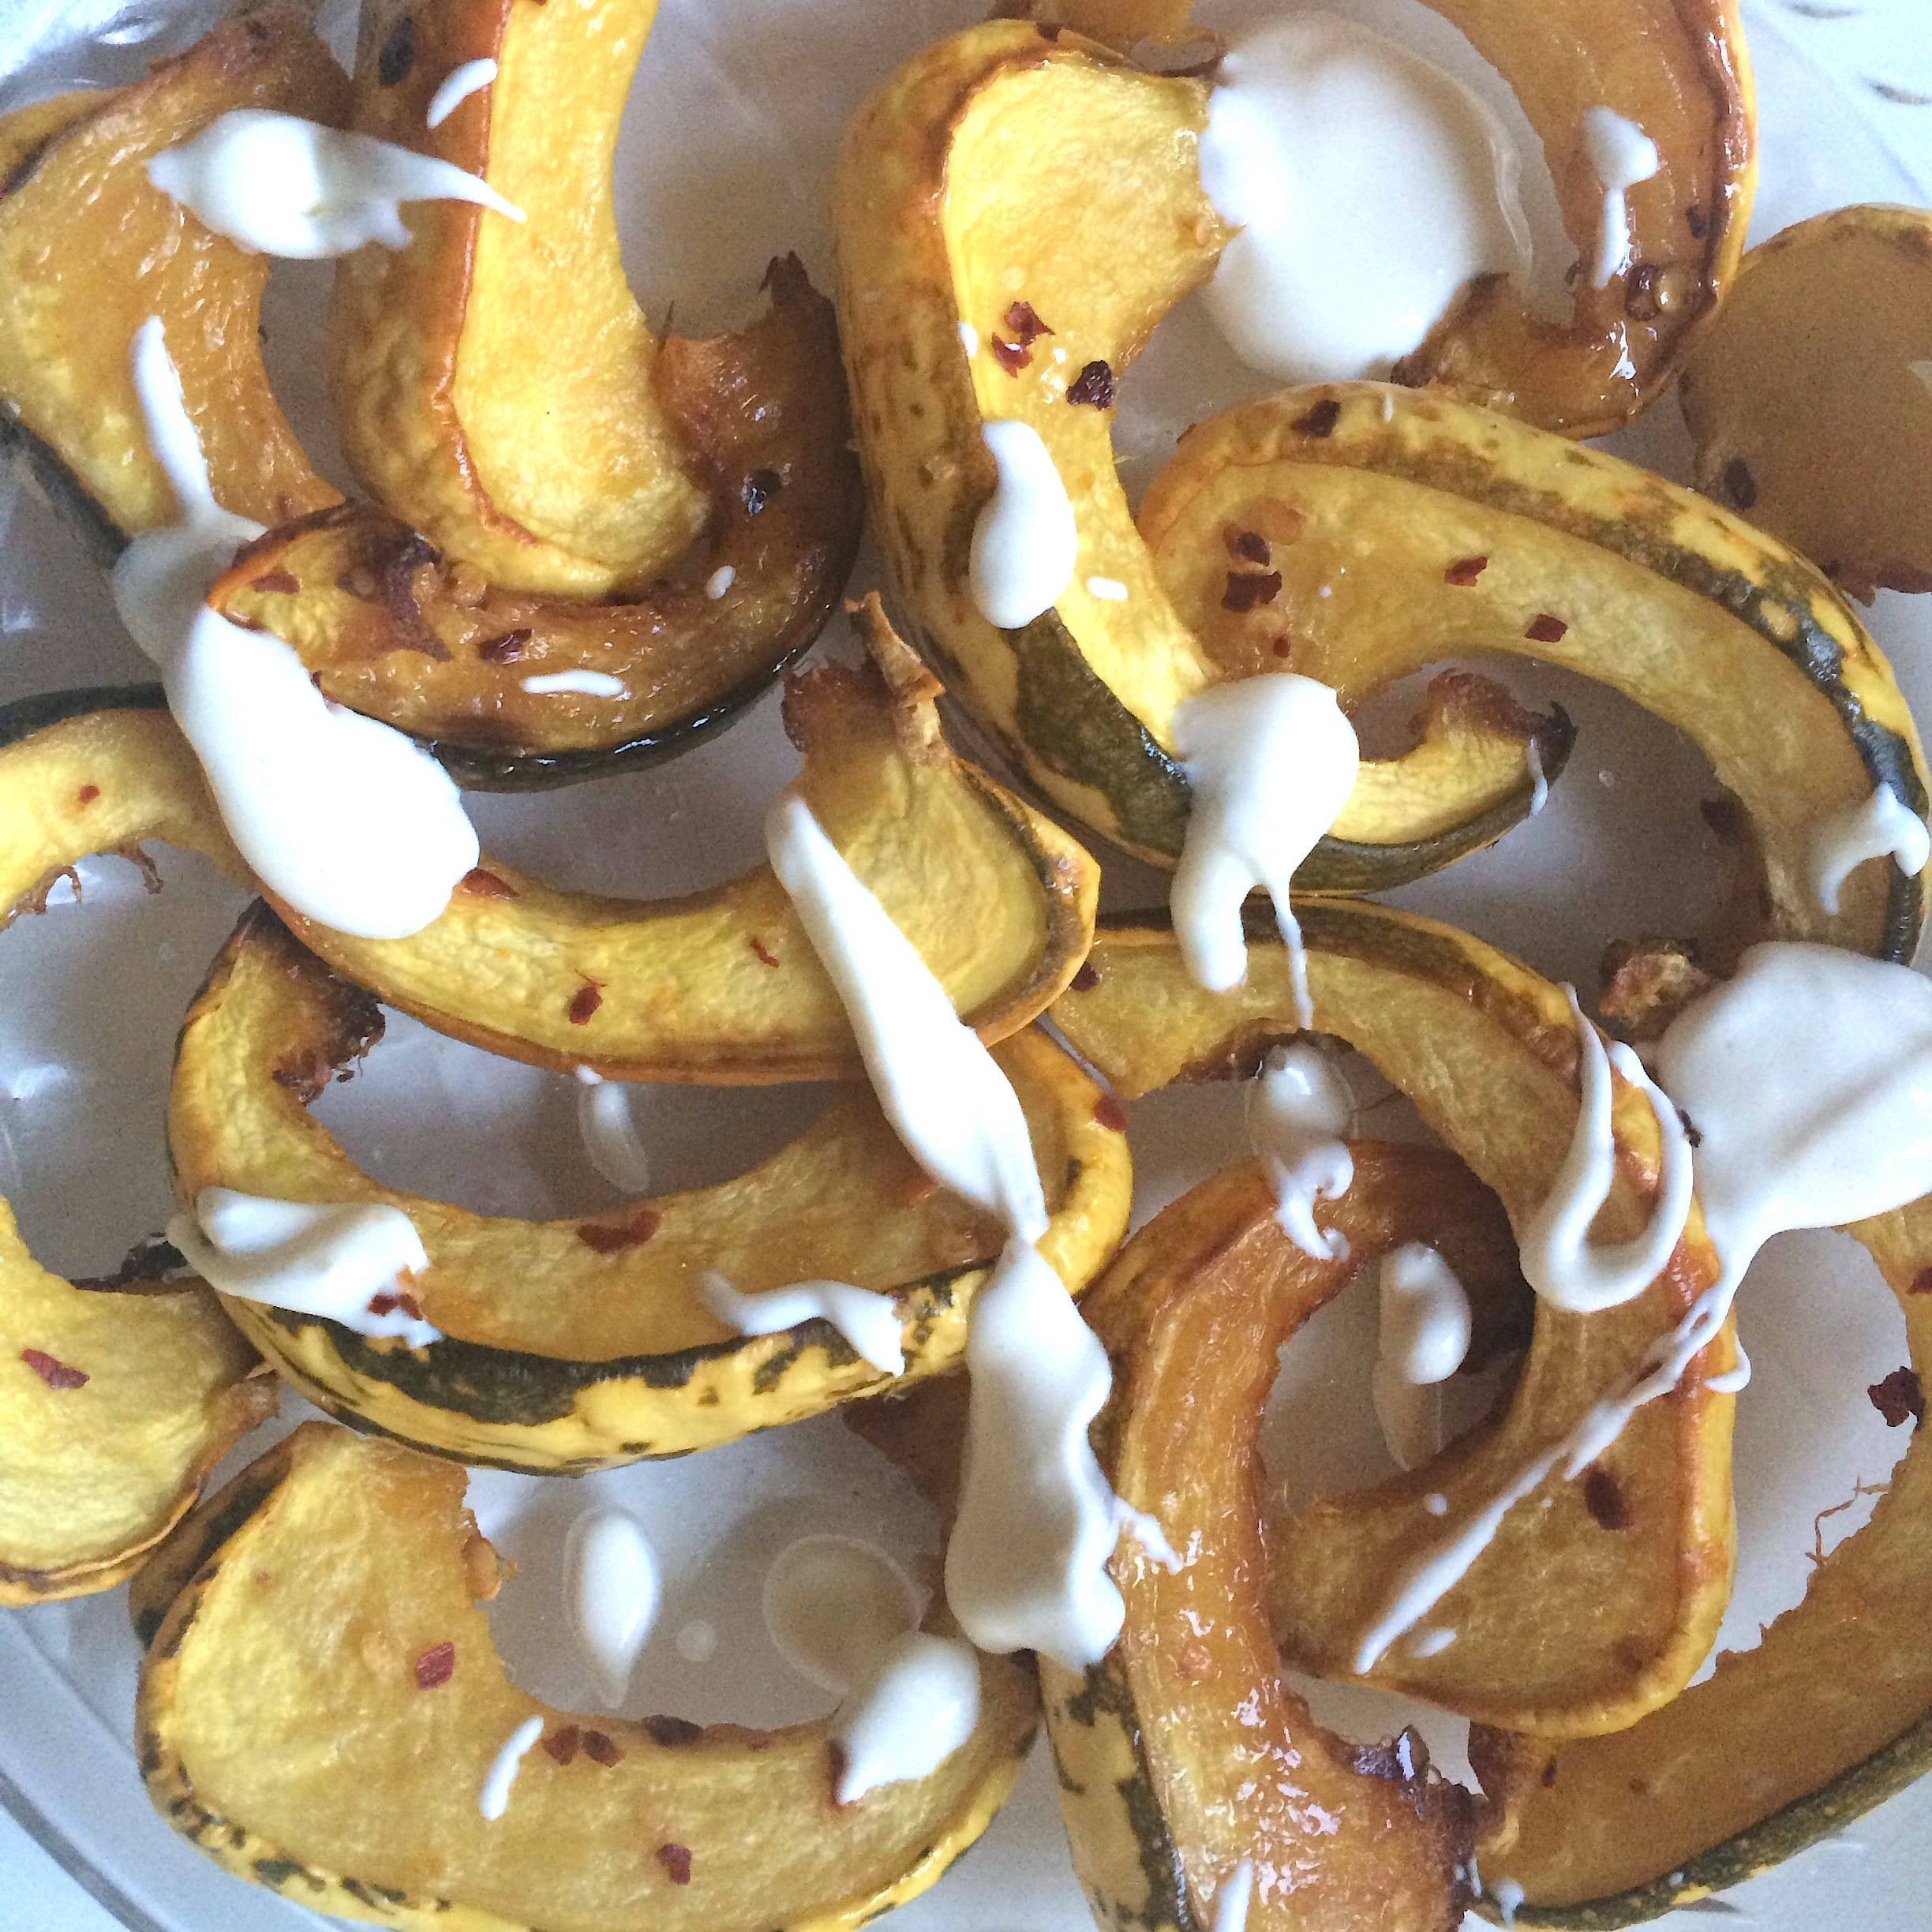 Roasted acorn squash with creme fraiche inspired by Edible SF.